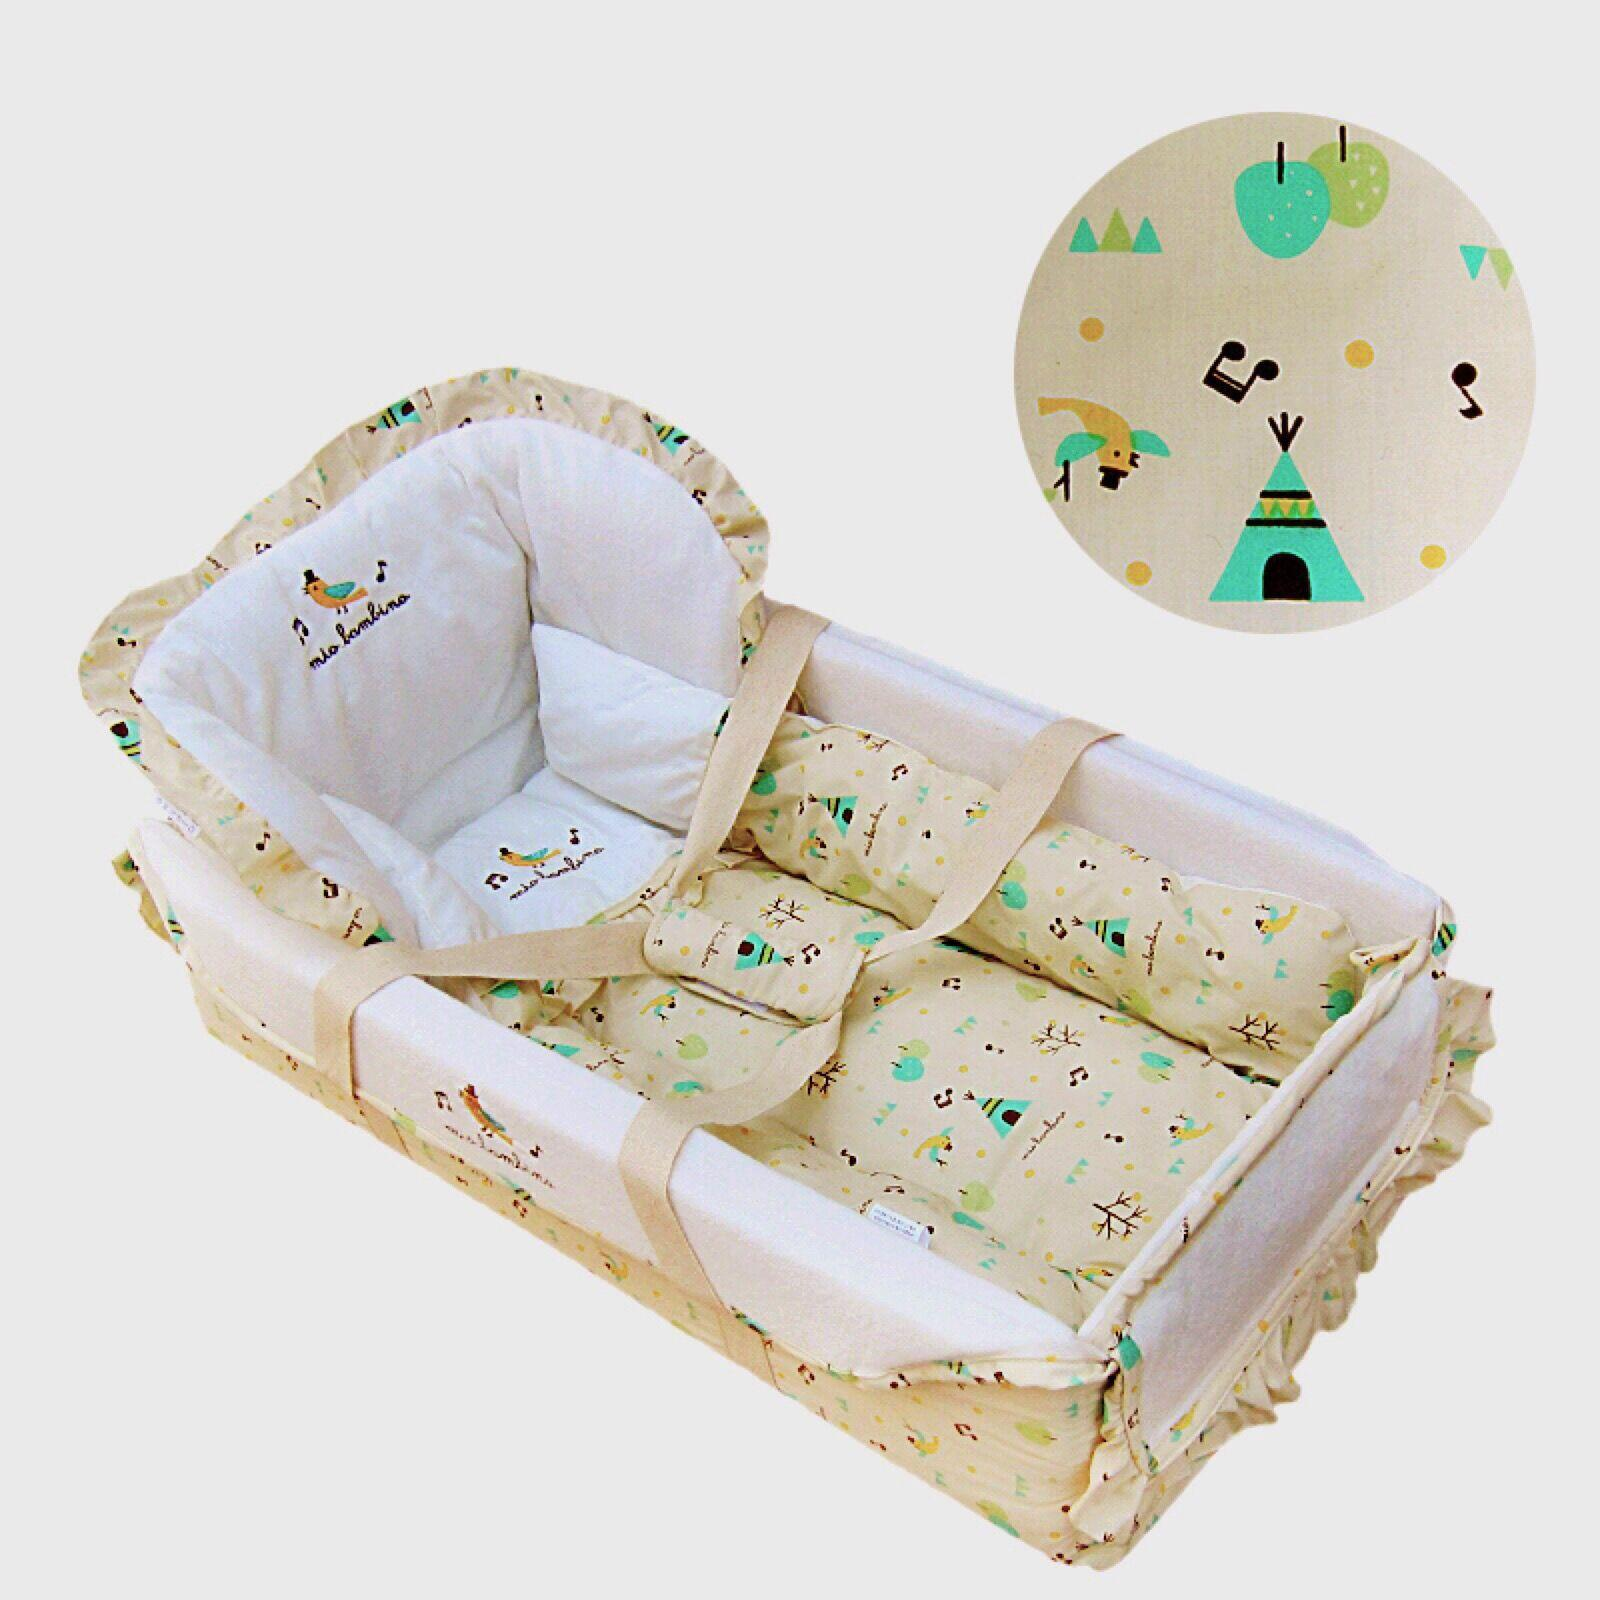 The Explosion Of Crib Infant Carrier Vehicle Portable Baby Cradle Bed Bed  Baby Sleeping Basket Export Standard Comfort Infant Crib Portable Crib For  Baby ...